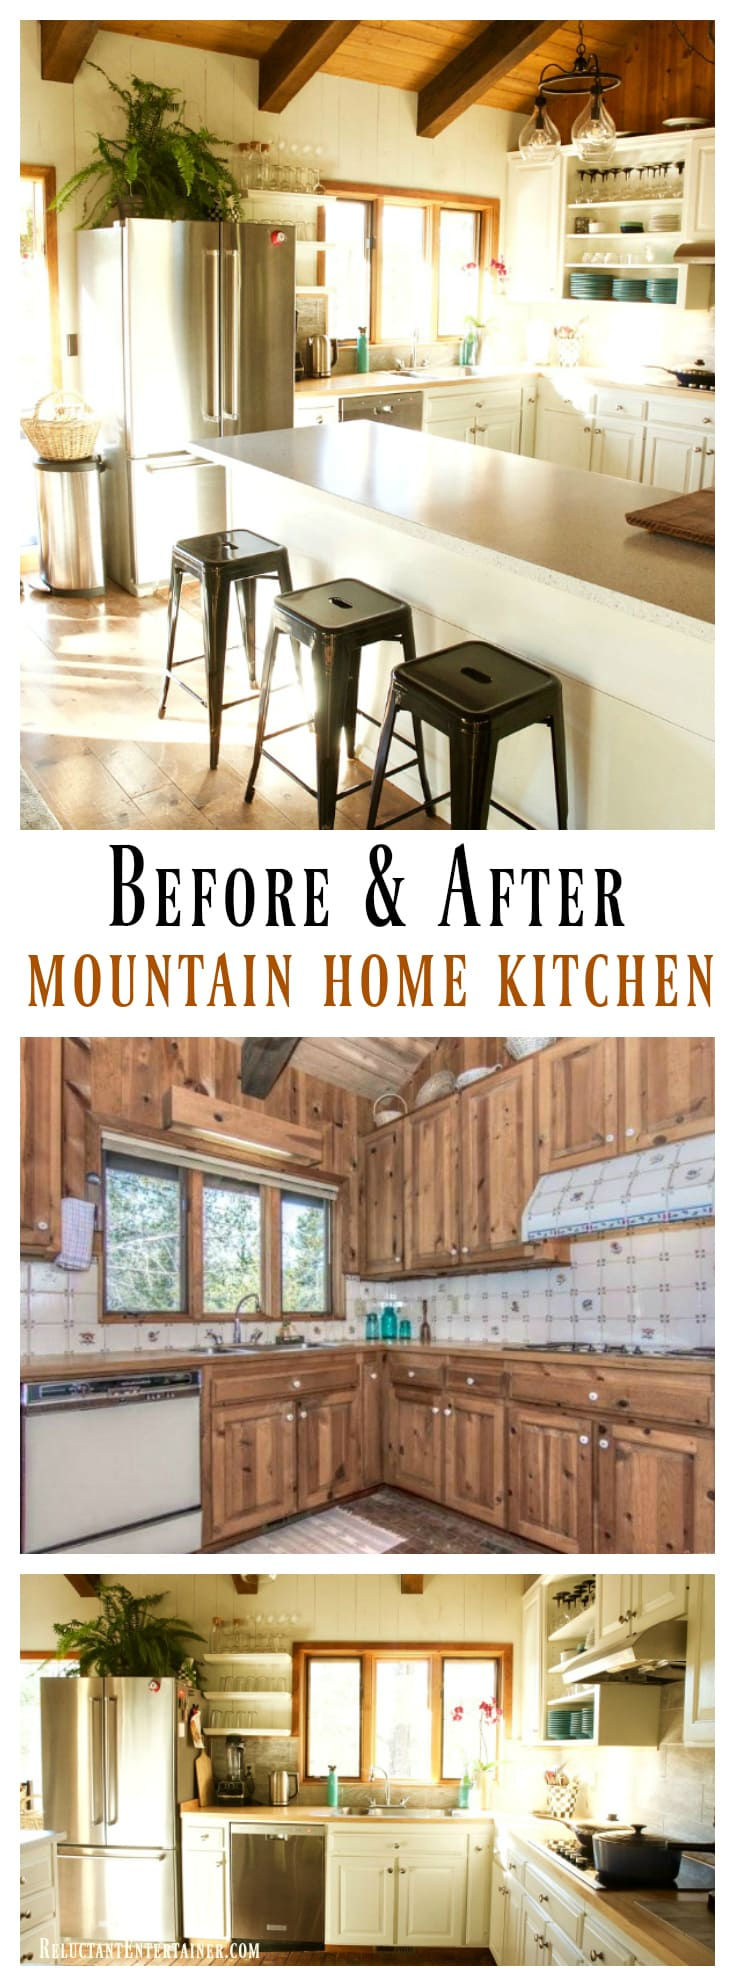 Mountain Home Renovation Final Reveal at ReluctantEntertainer.com